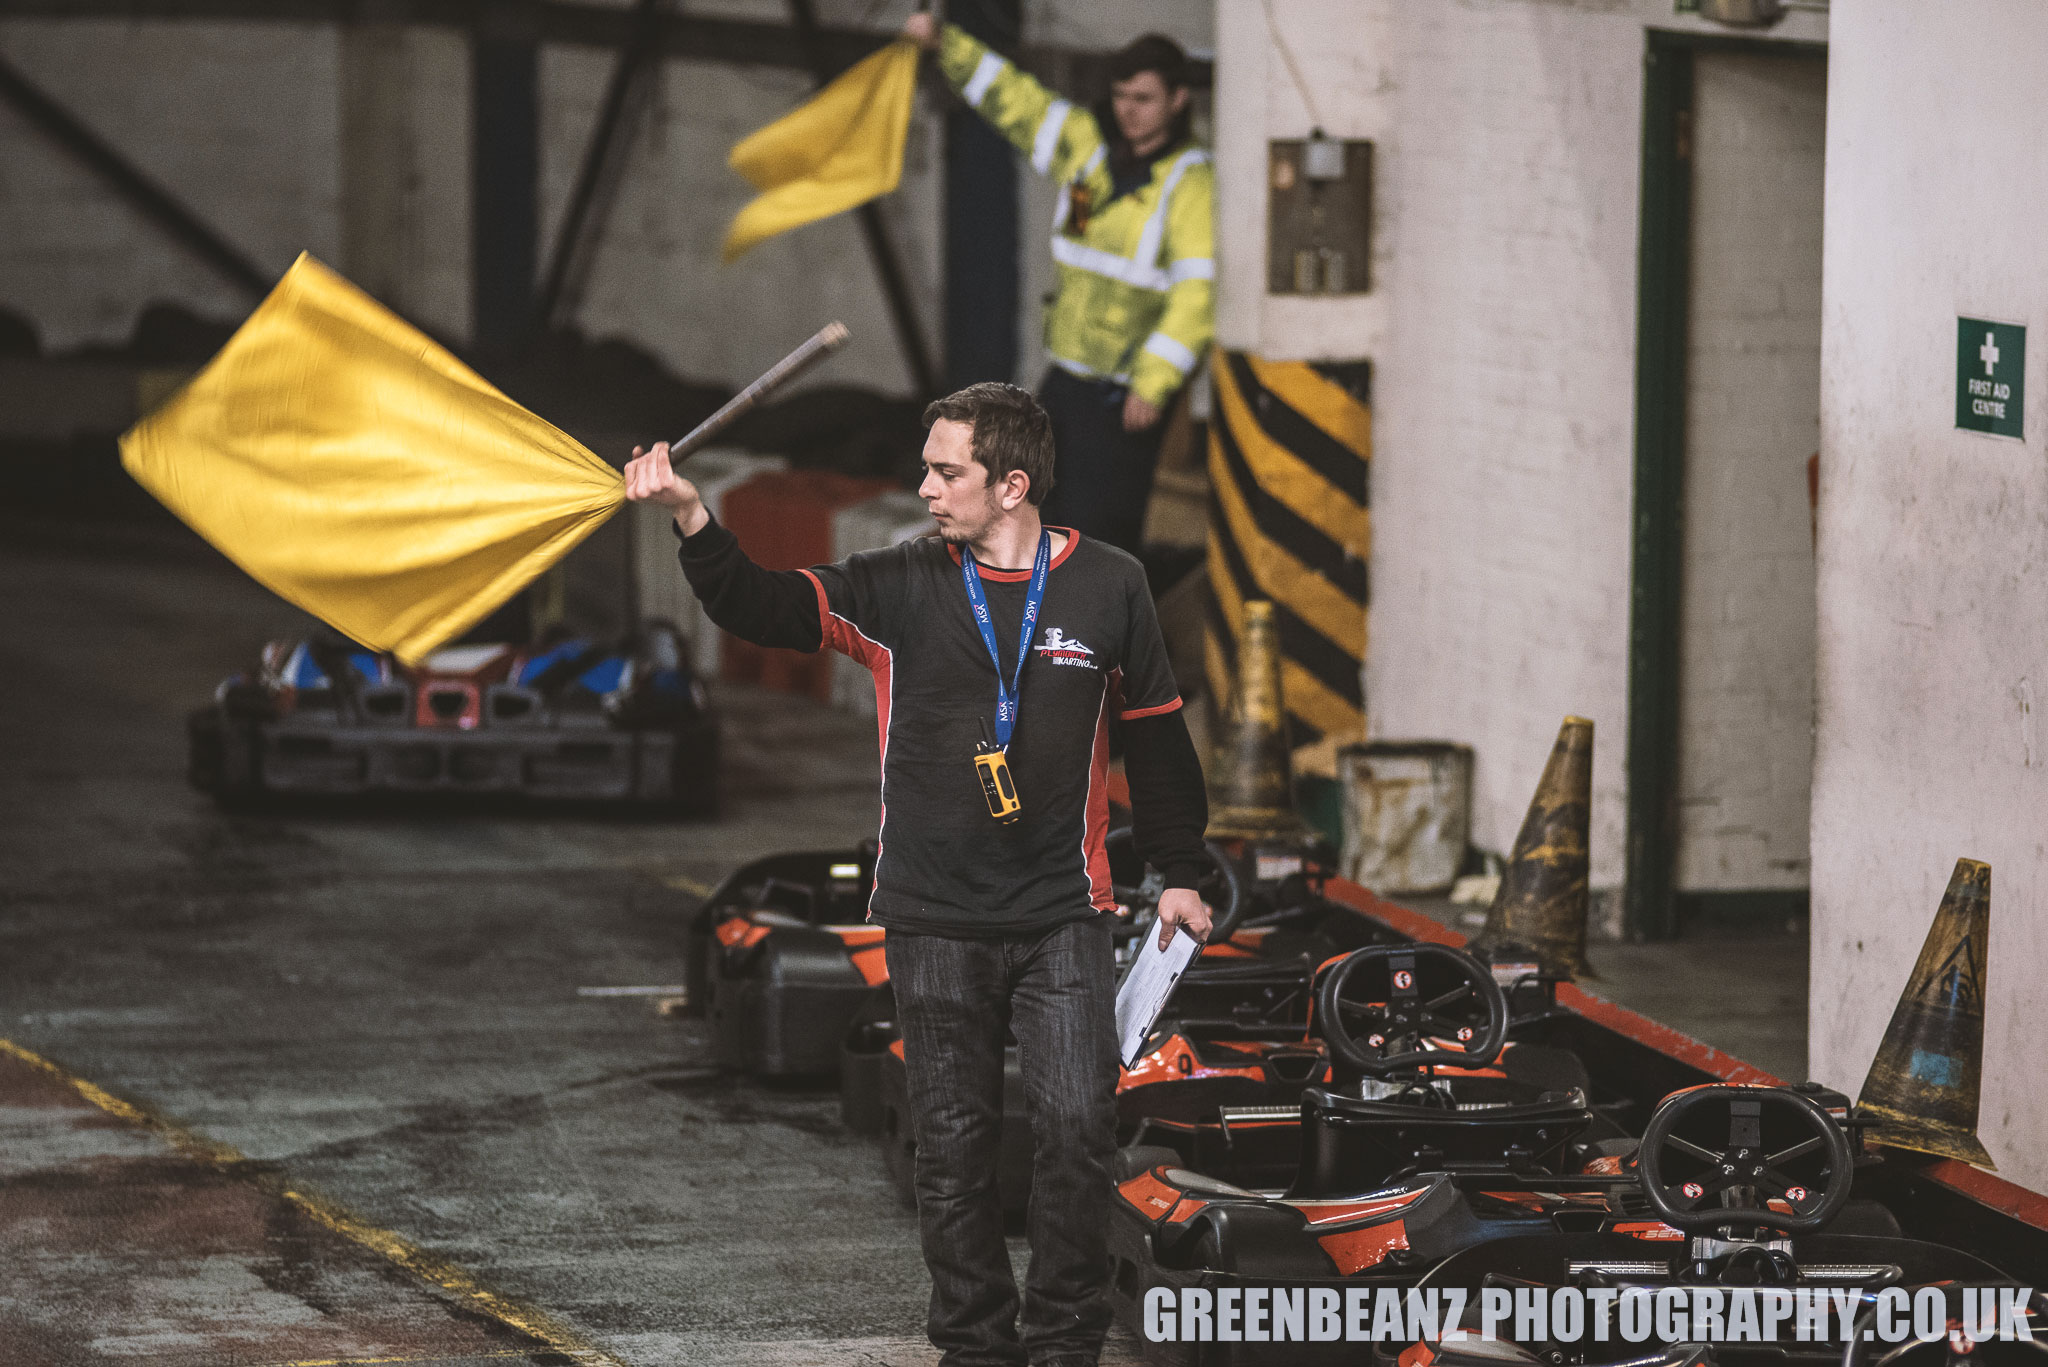 Yellow flag being waved at Plymouth Karting Motorsport Event